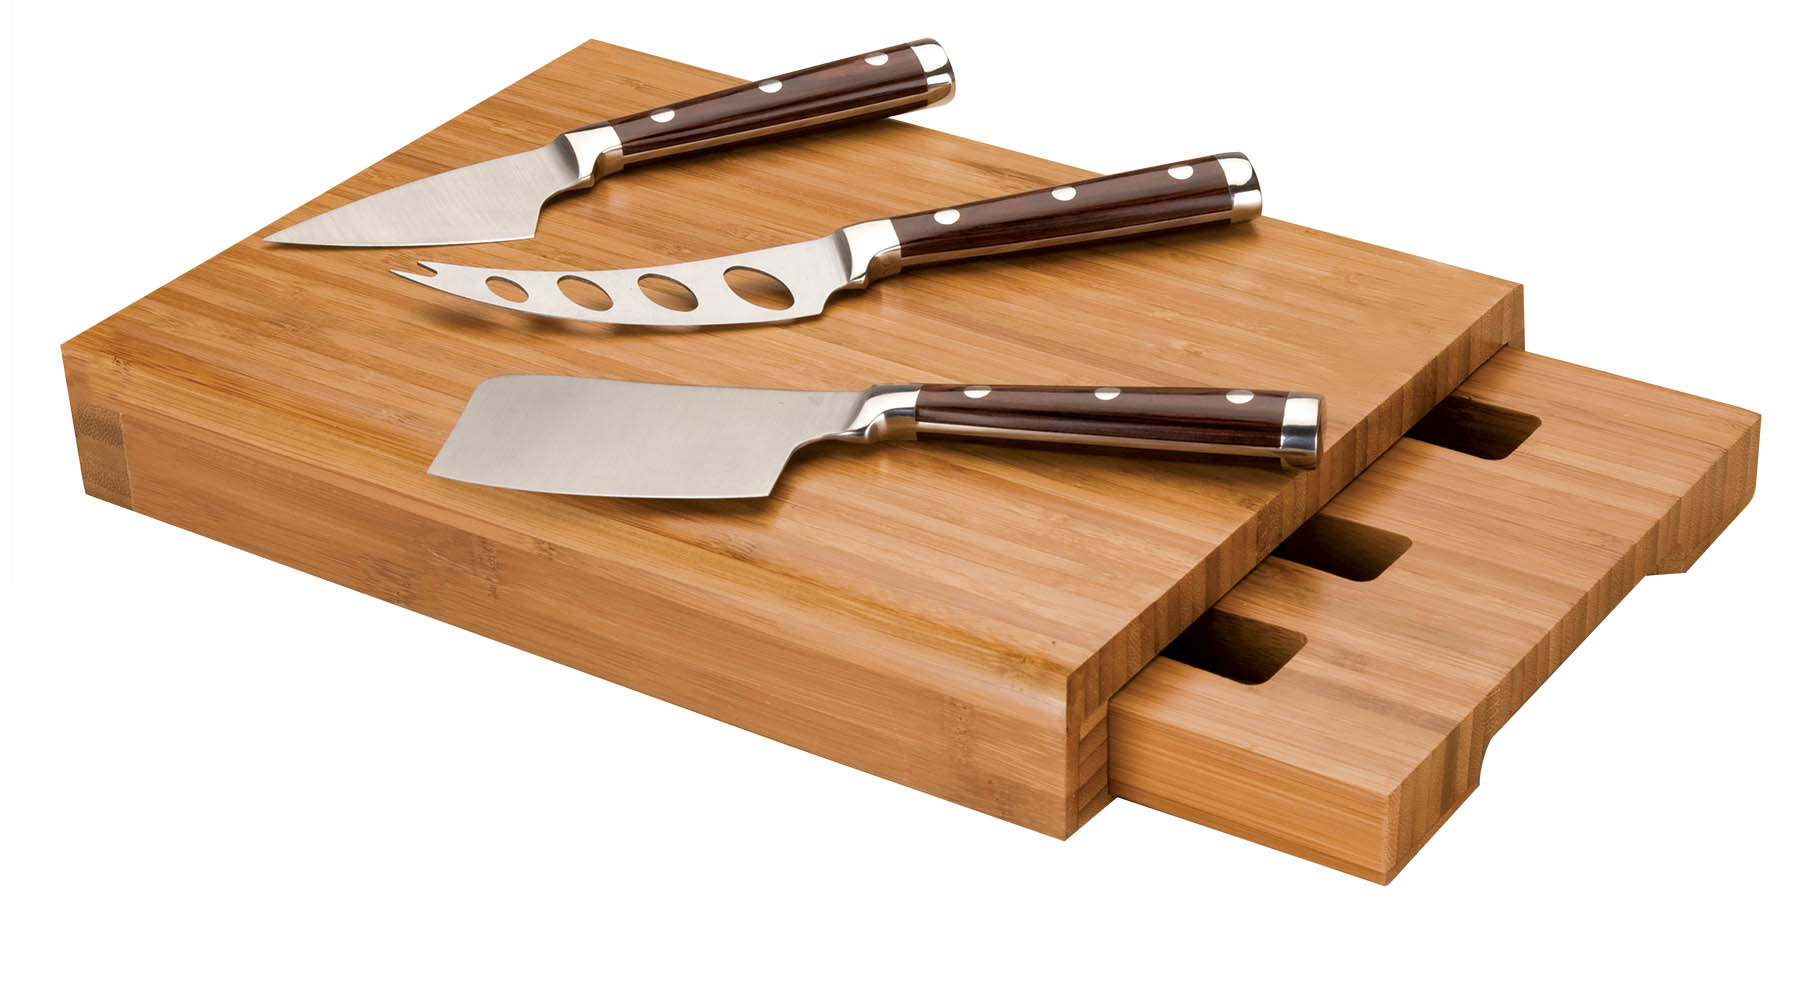 bamboo cheese cutting board stainless steel cleaver set, Kitchen design